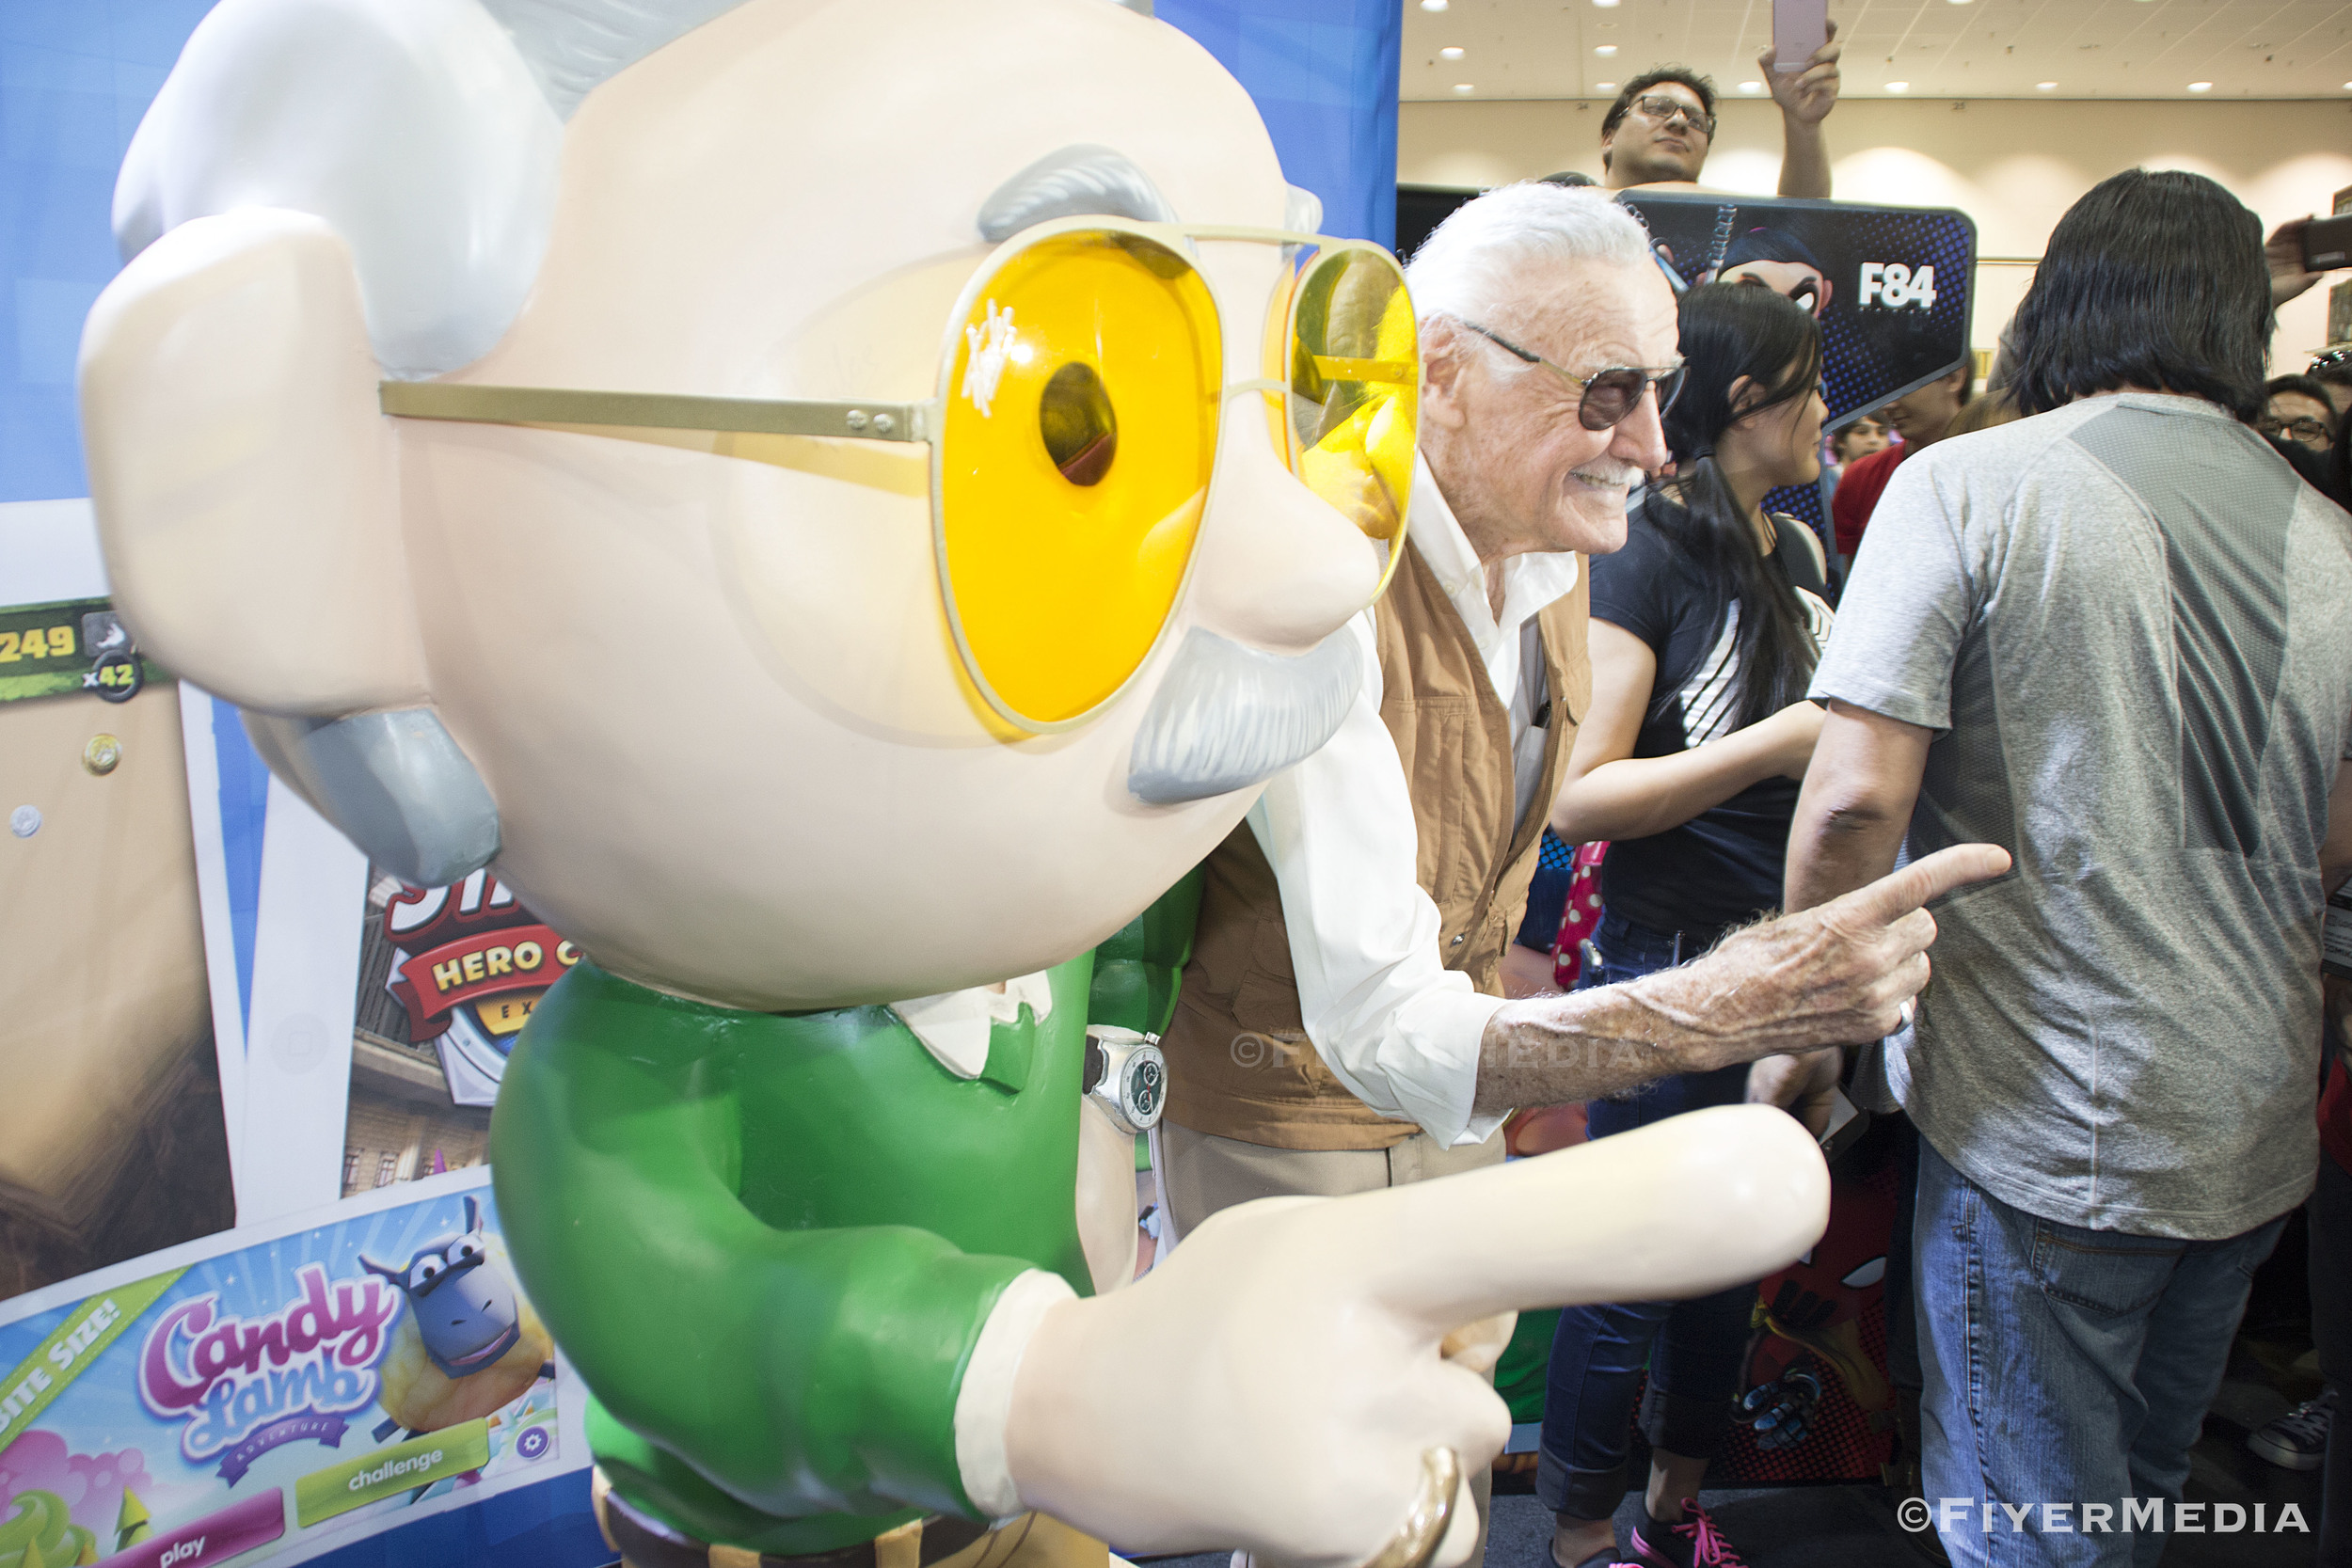 Stan Lee at the F84 Games Booth